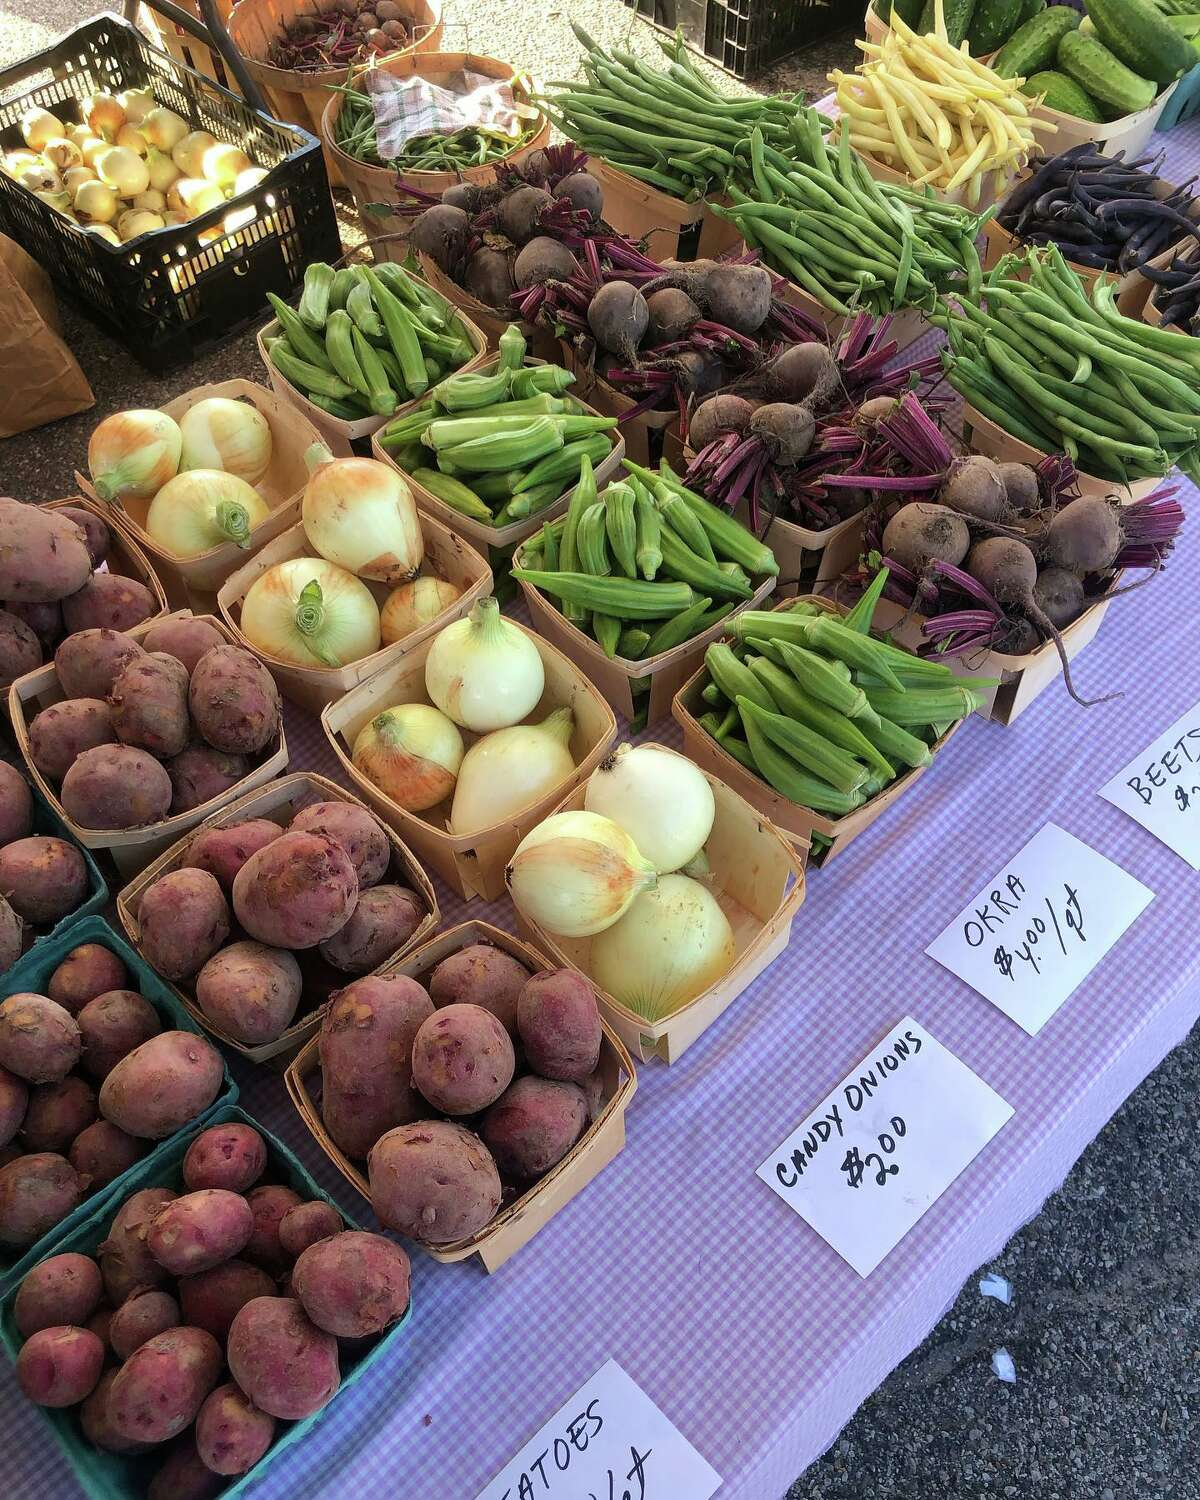 The Big Rapids Farmers Market offers area residents with a variety of options, including fruits, vegetables and more.